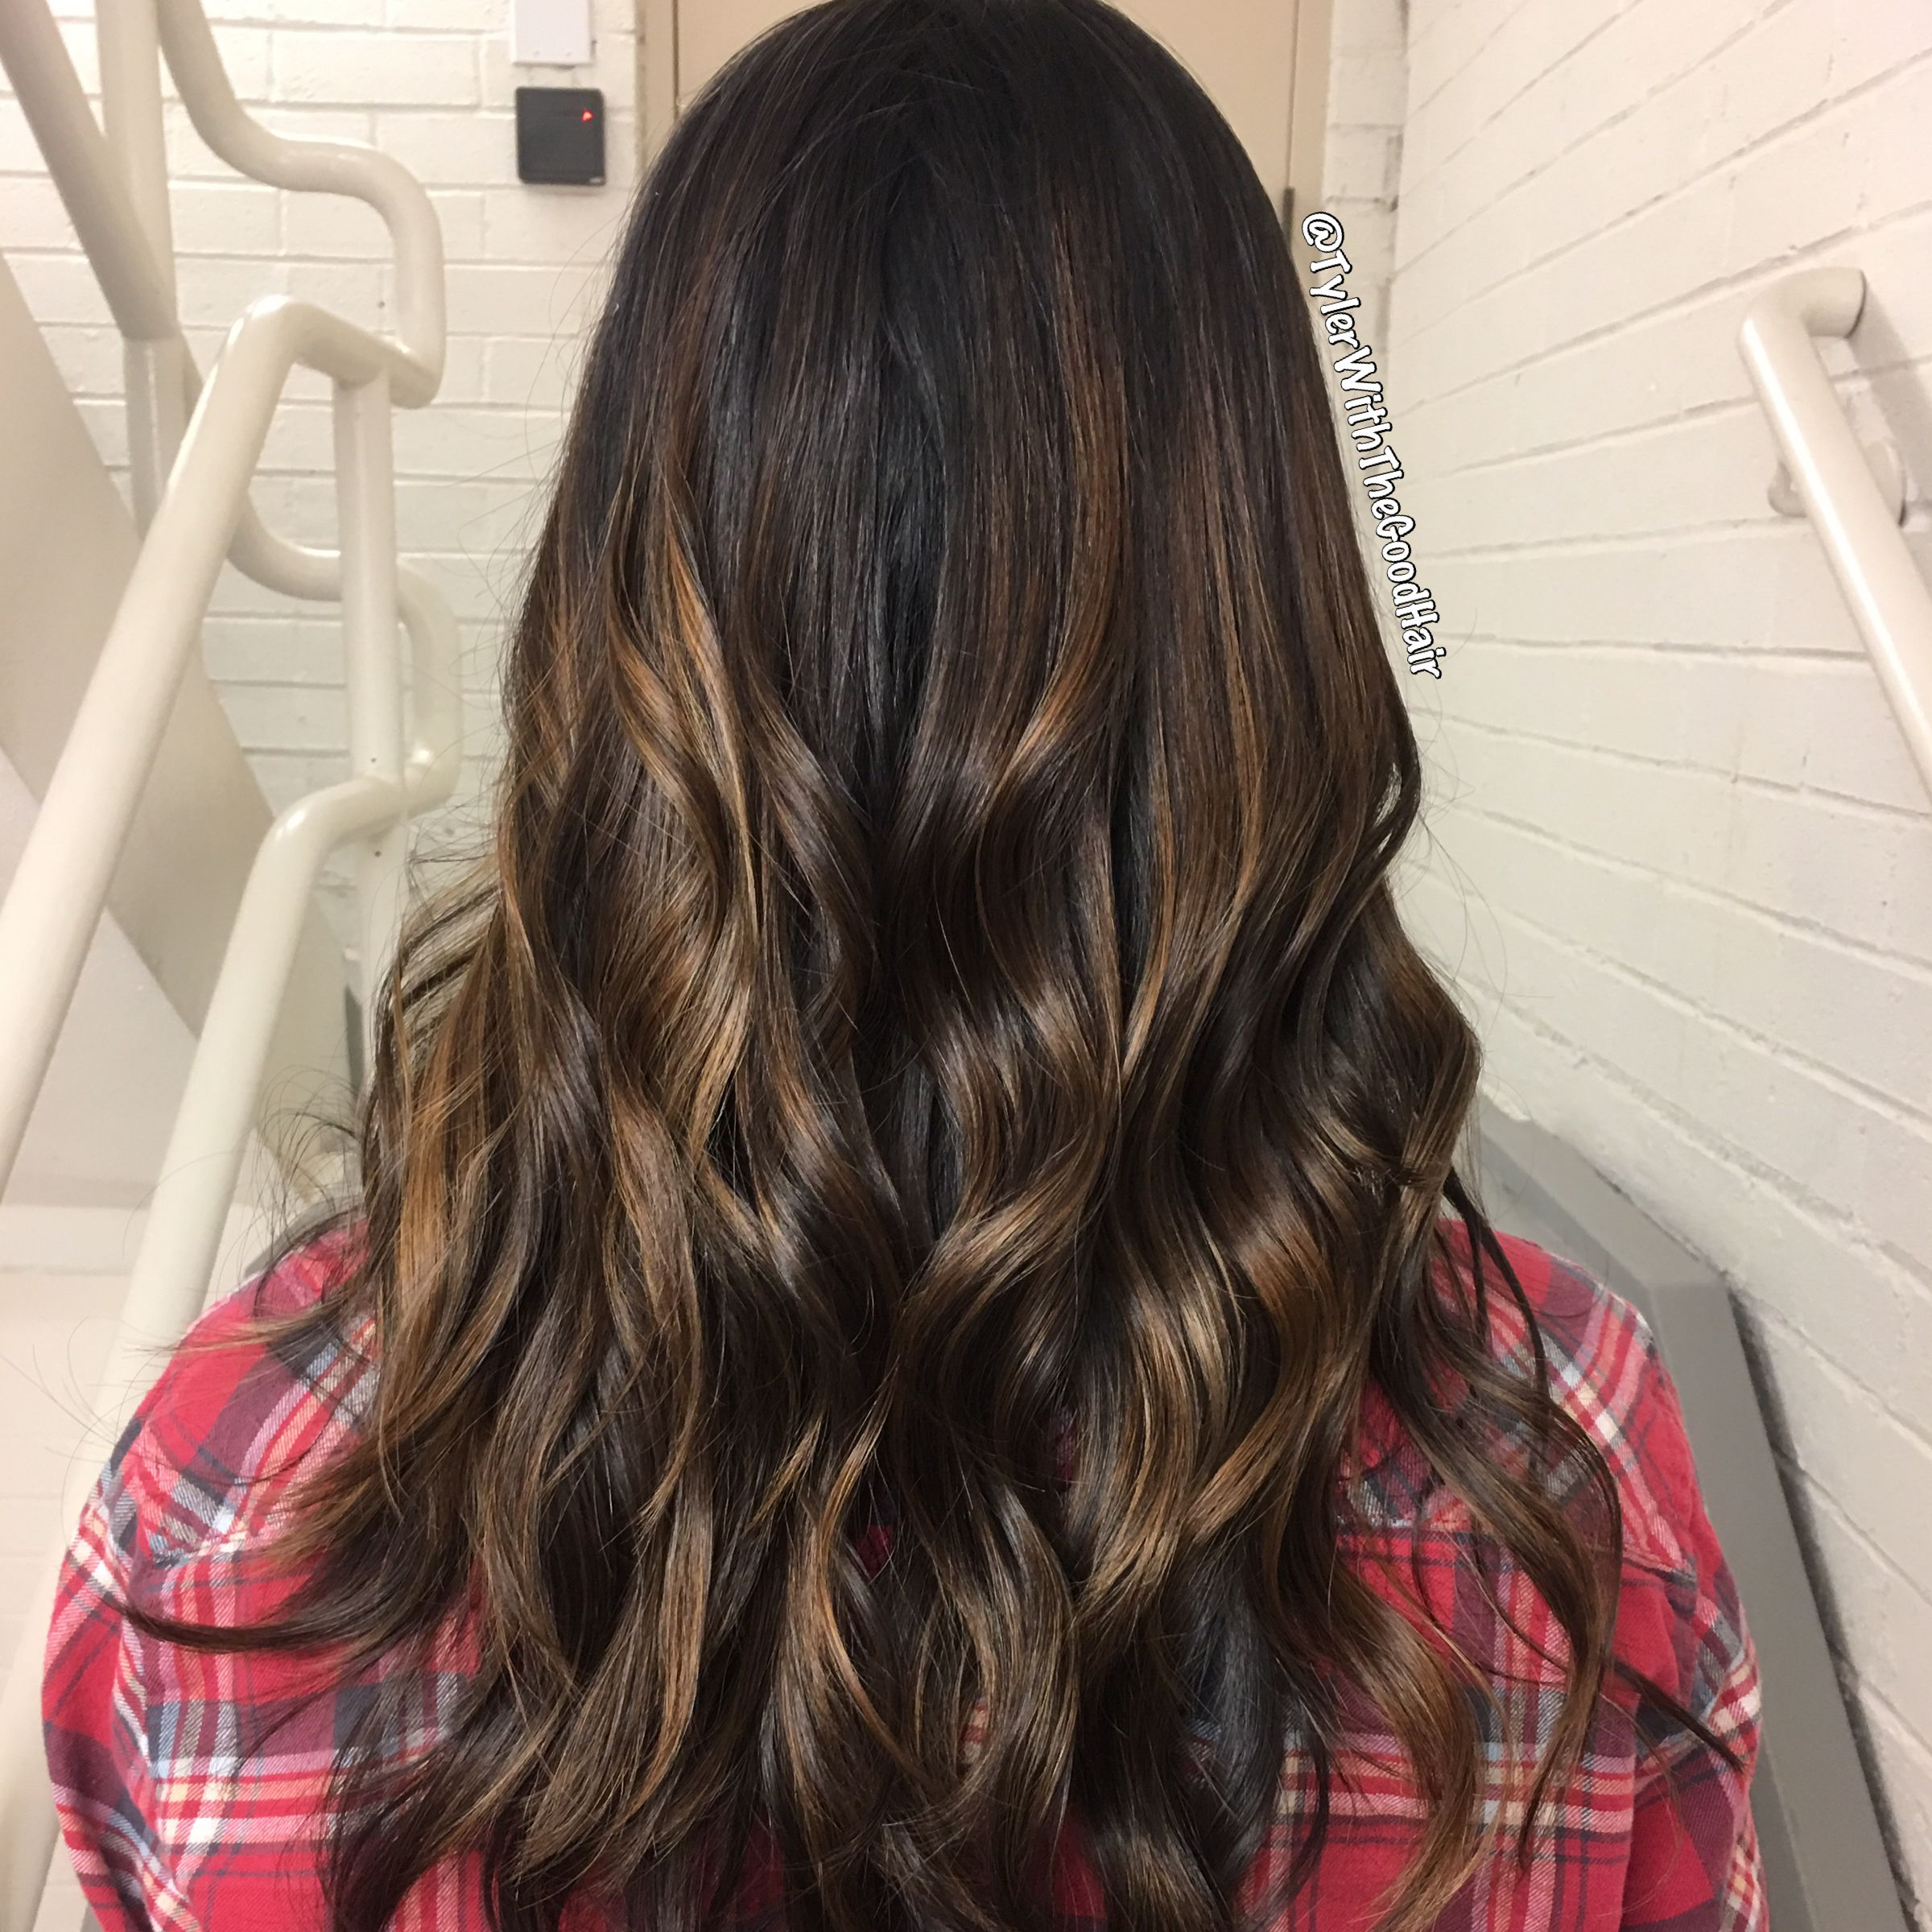 Fall and winter inspired balayage with dimension, glazed with Redken ShadesEQ, and curled with a 1 and a quarter inch curling iron ❤️  #balayage #naturalbalayage #brownbalayage #balayageondarkhair #blondebalayage #curls #hair #redbalayage #redhair